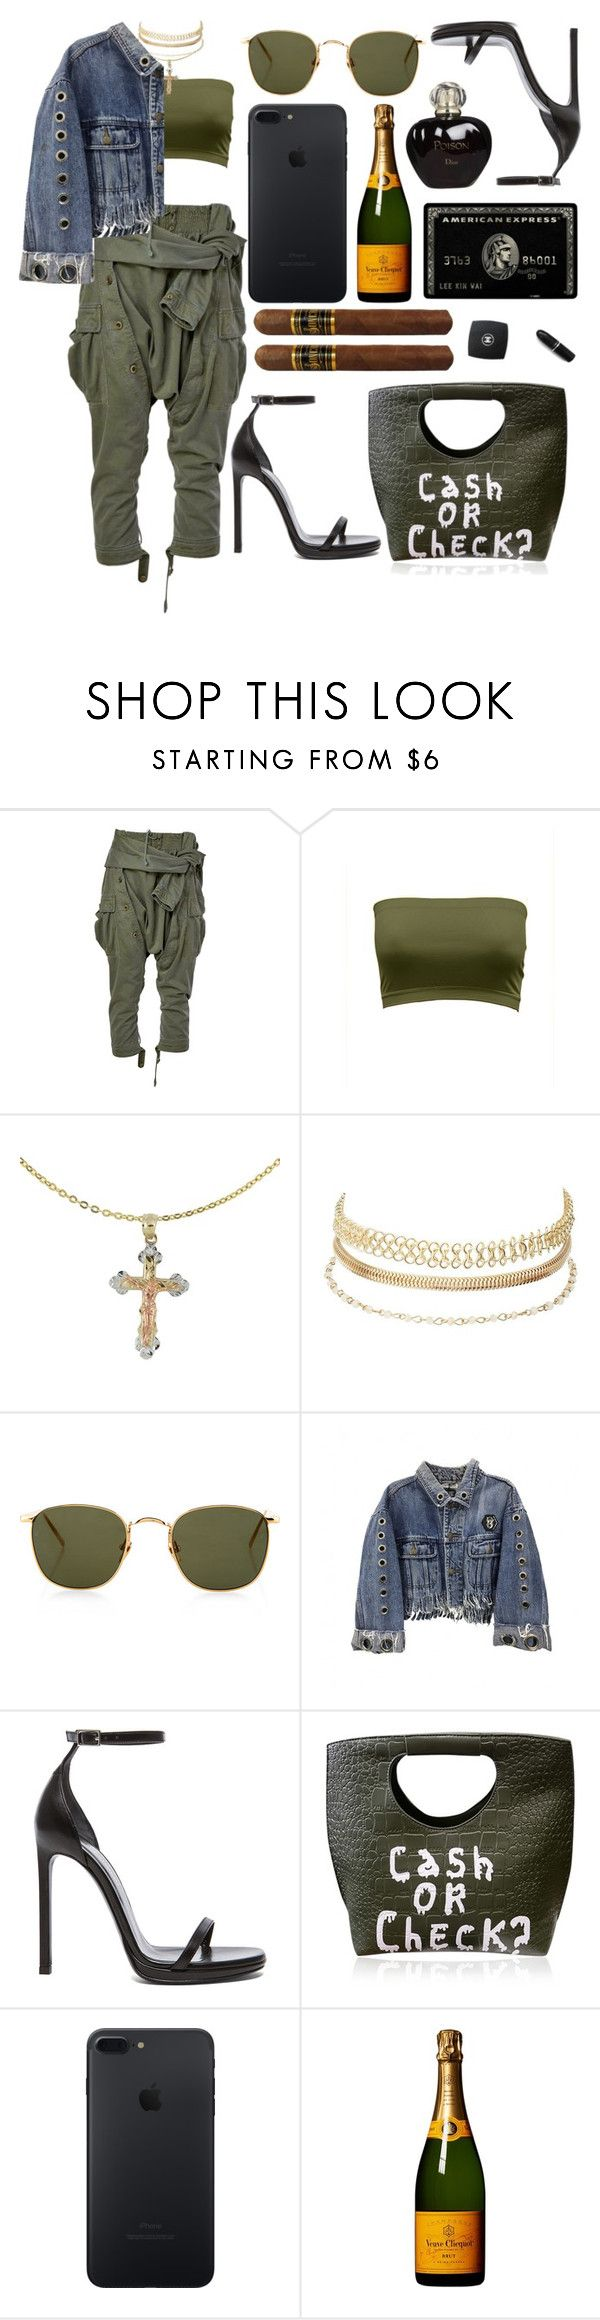 """""""so you can put me together and throw me against the wall"""" by hoodprophet ❤ liked on Polyvore featuring Faith Connexion, Cross, Charlotte Russe, Linda Farrow, Yves Saint Laurent and Christian Dior"""